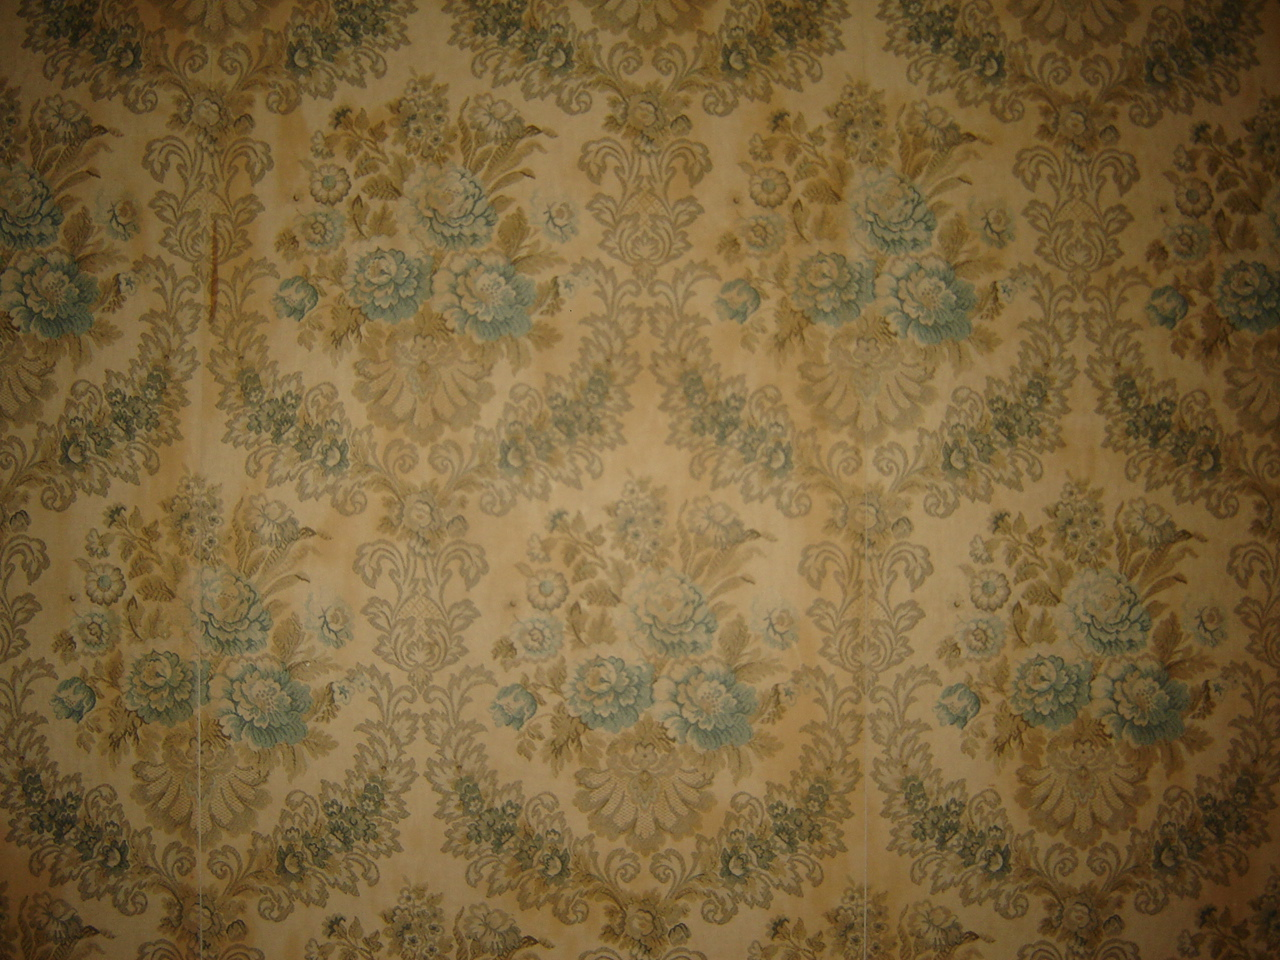 Wallpaper antique 2017 grasscloth wallpaper for Vintage wallpaper